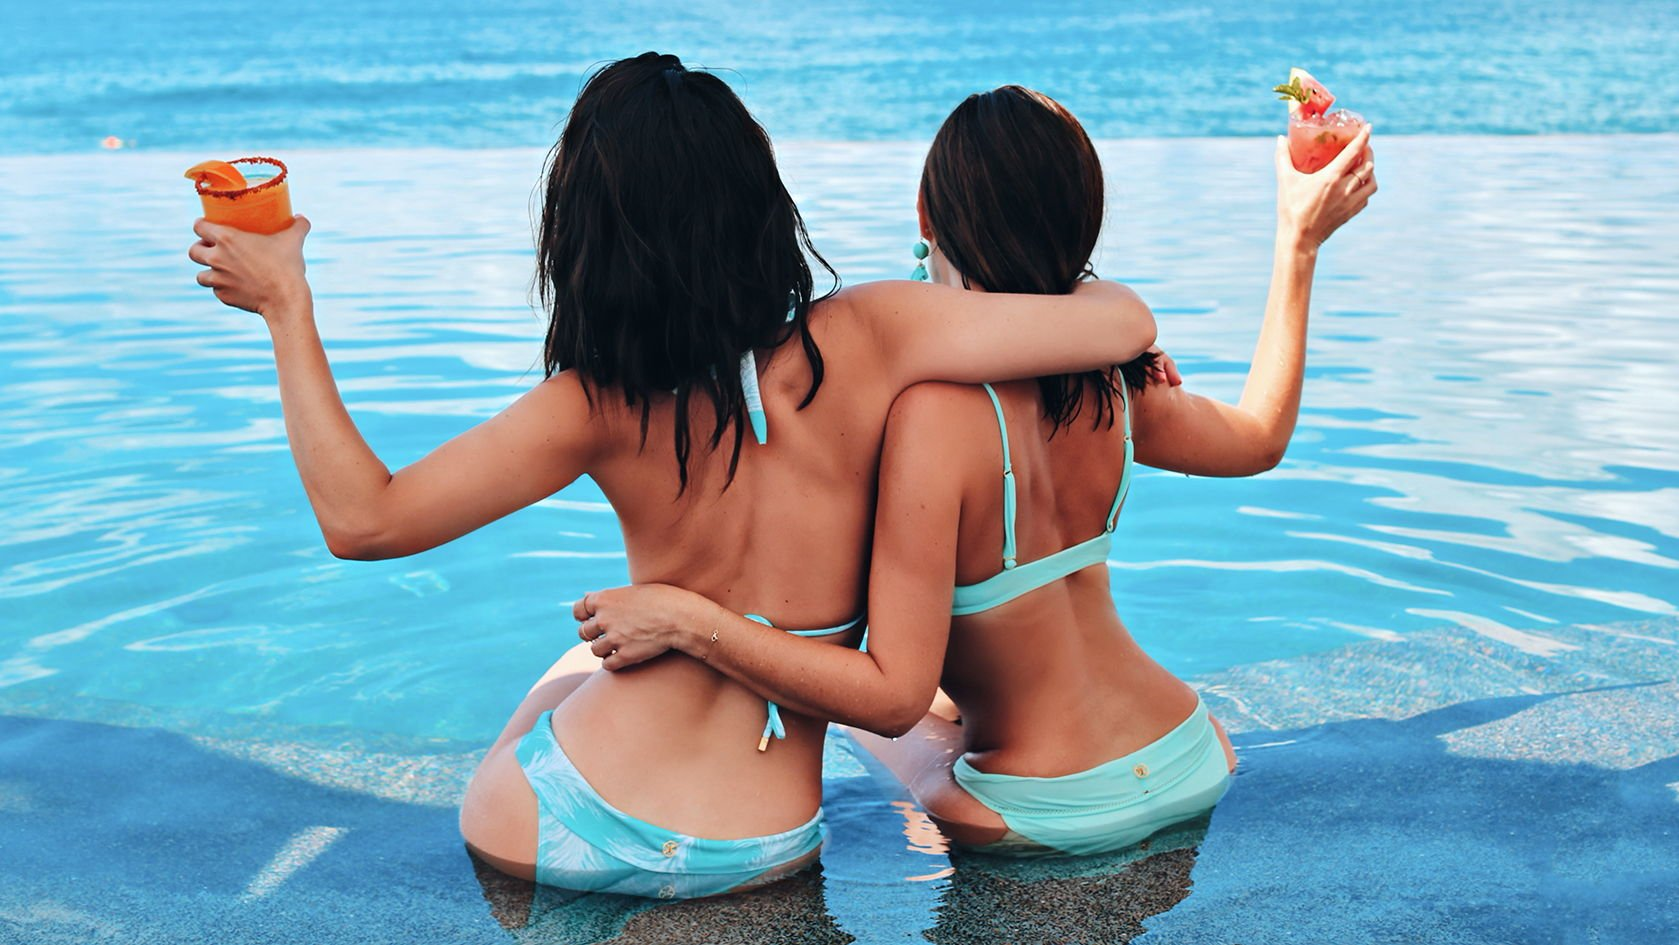 The best places in Cancun to pick up a prostitute